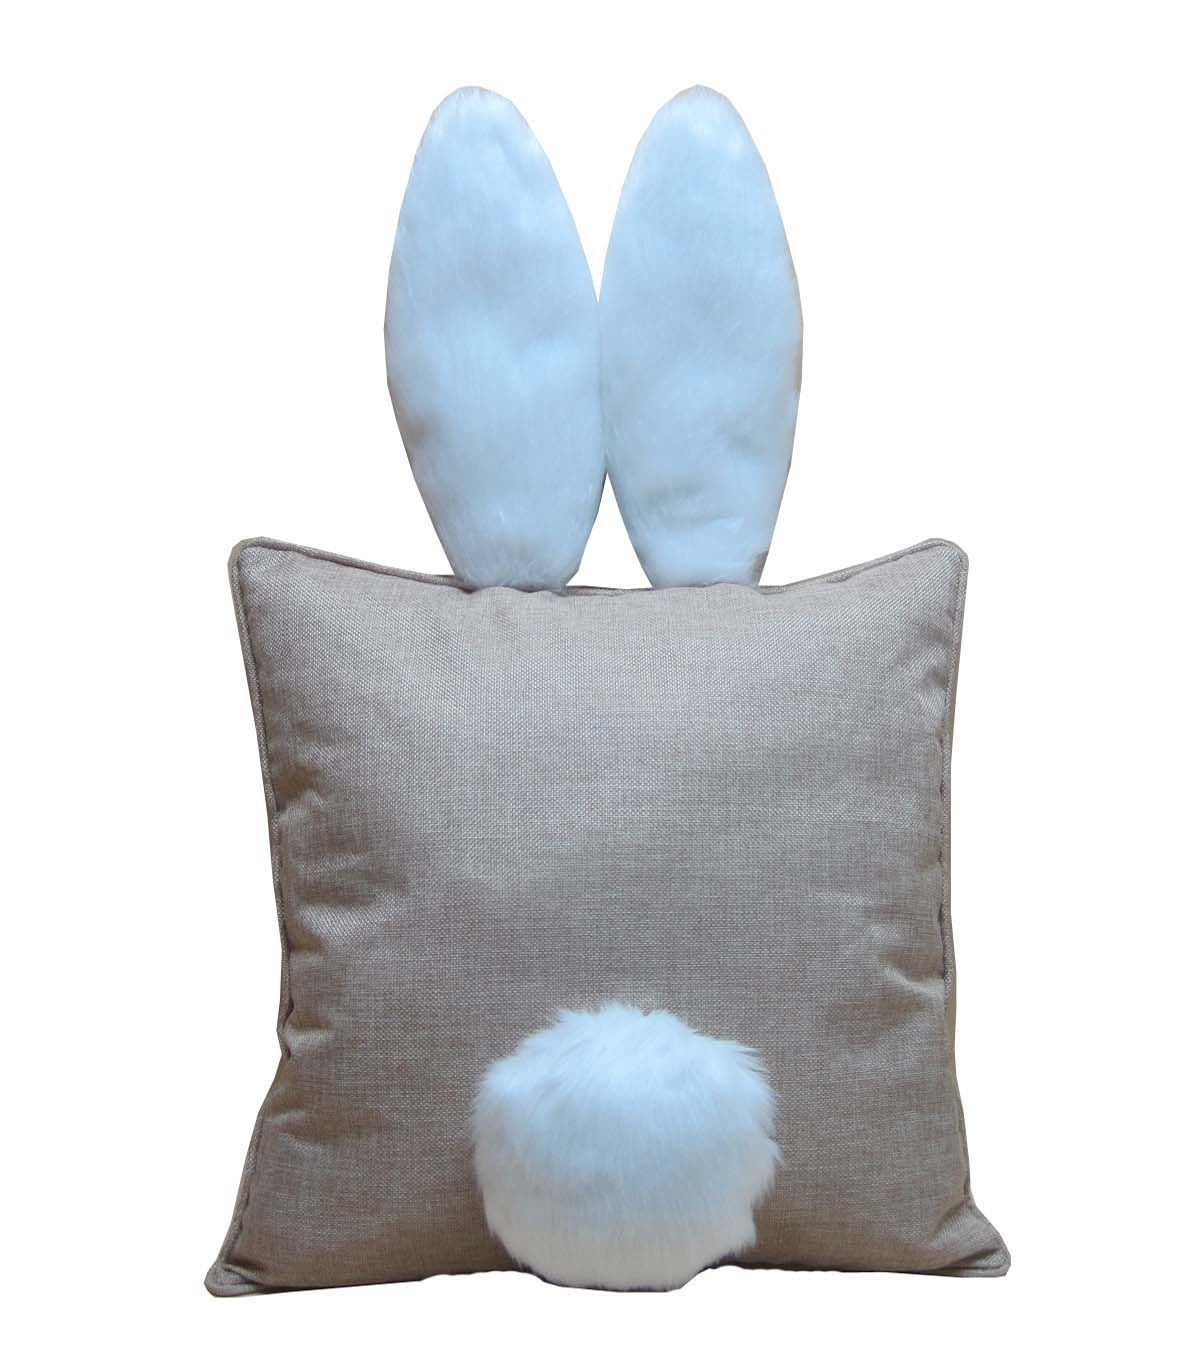 Wedding decorations using crepe paper october 2018 Easter Burlap Pillow with Bunny Ears  Seasonal  Pinterest